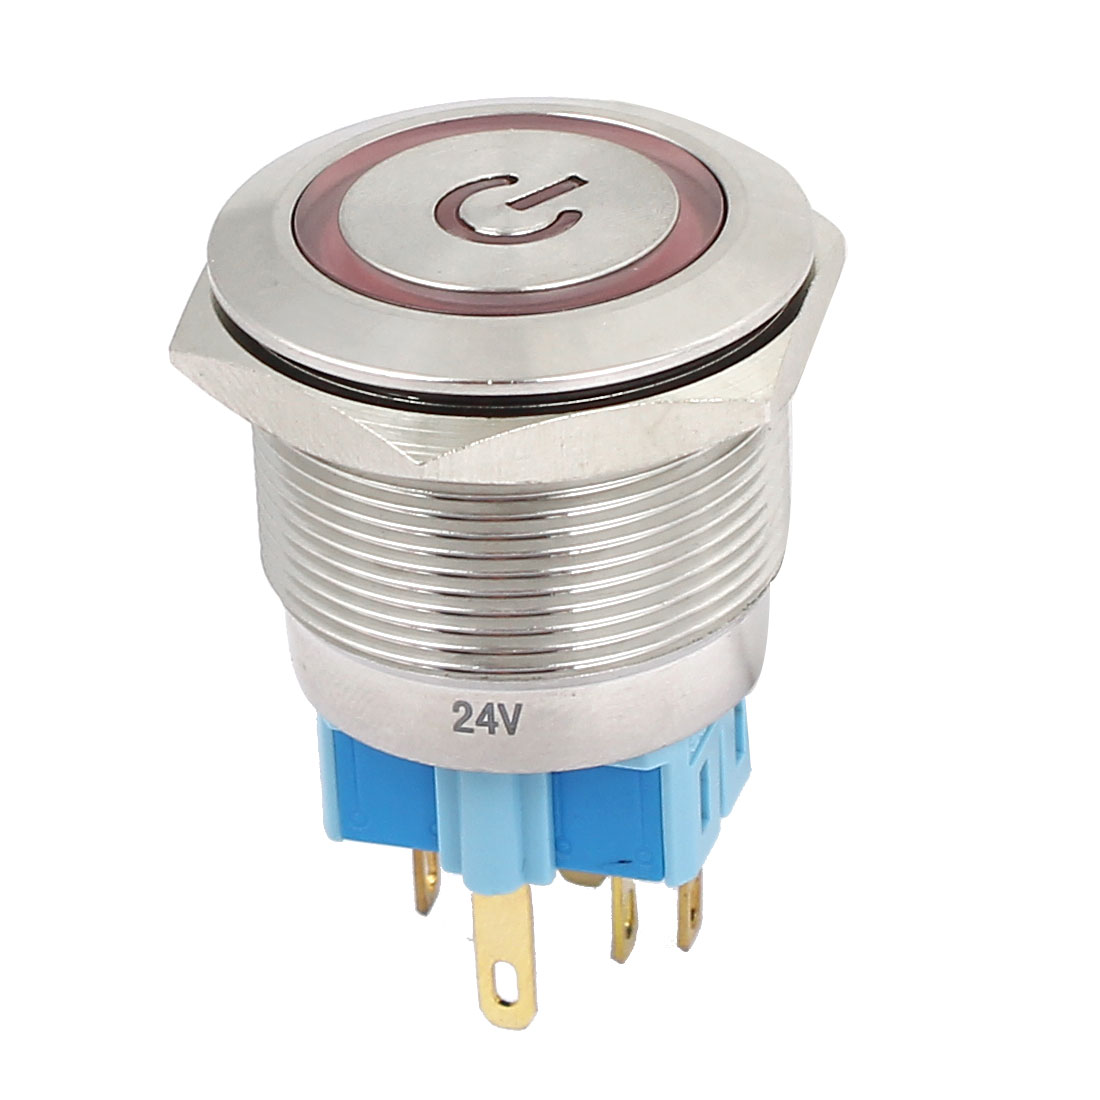 24V 25mm Dia Thread Red LED Lamp Latching Metal Power Pushbutton Switch